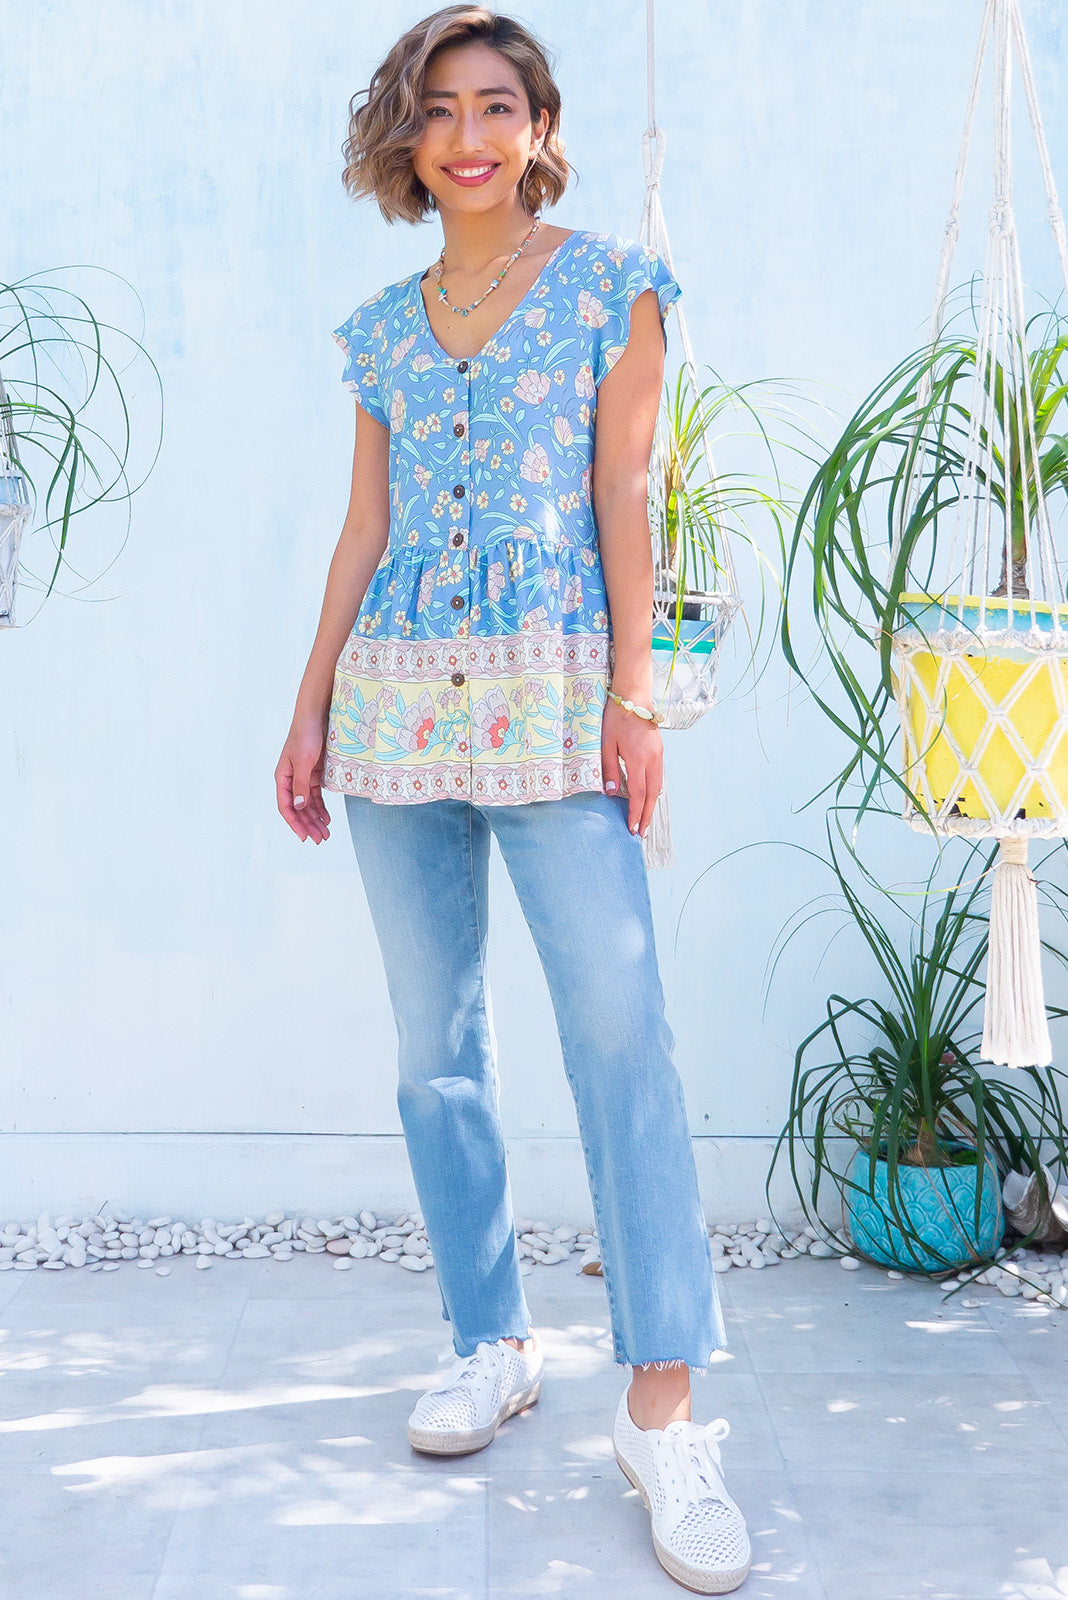 The Sea Coast Blouse Cornflower Blue features functional button front, scoop neckline, cap sleeves, soft peplum cut and 100% viscose in blue floral print with border feature.